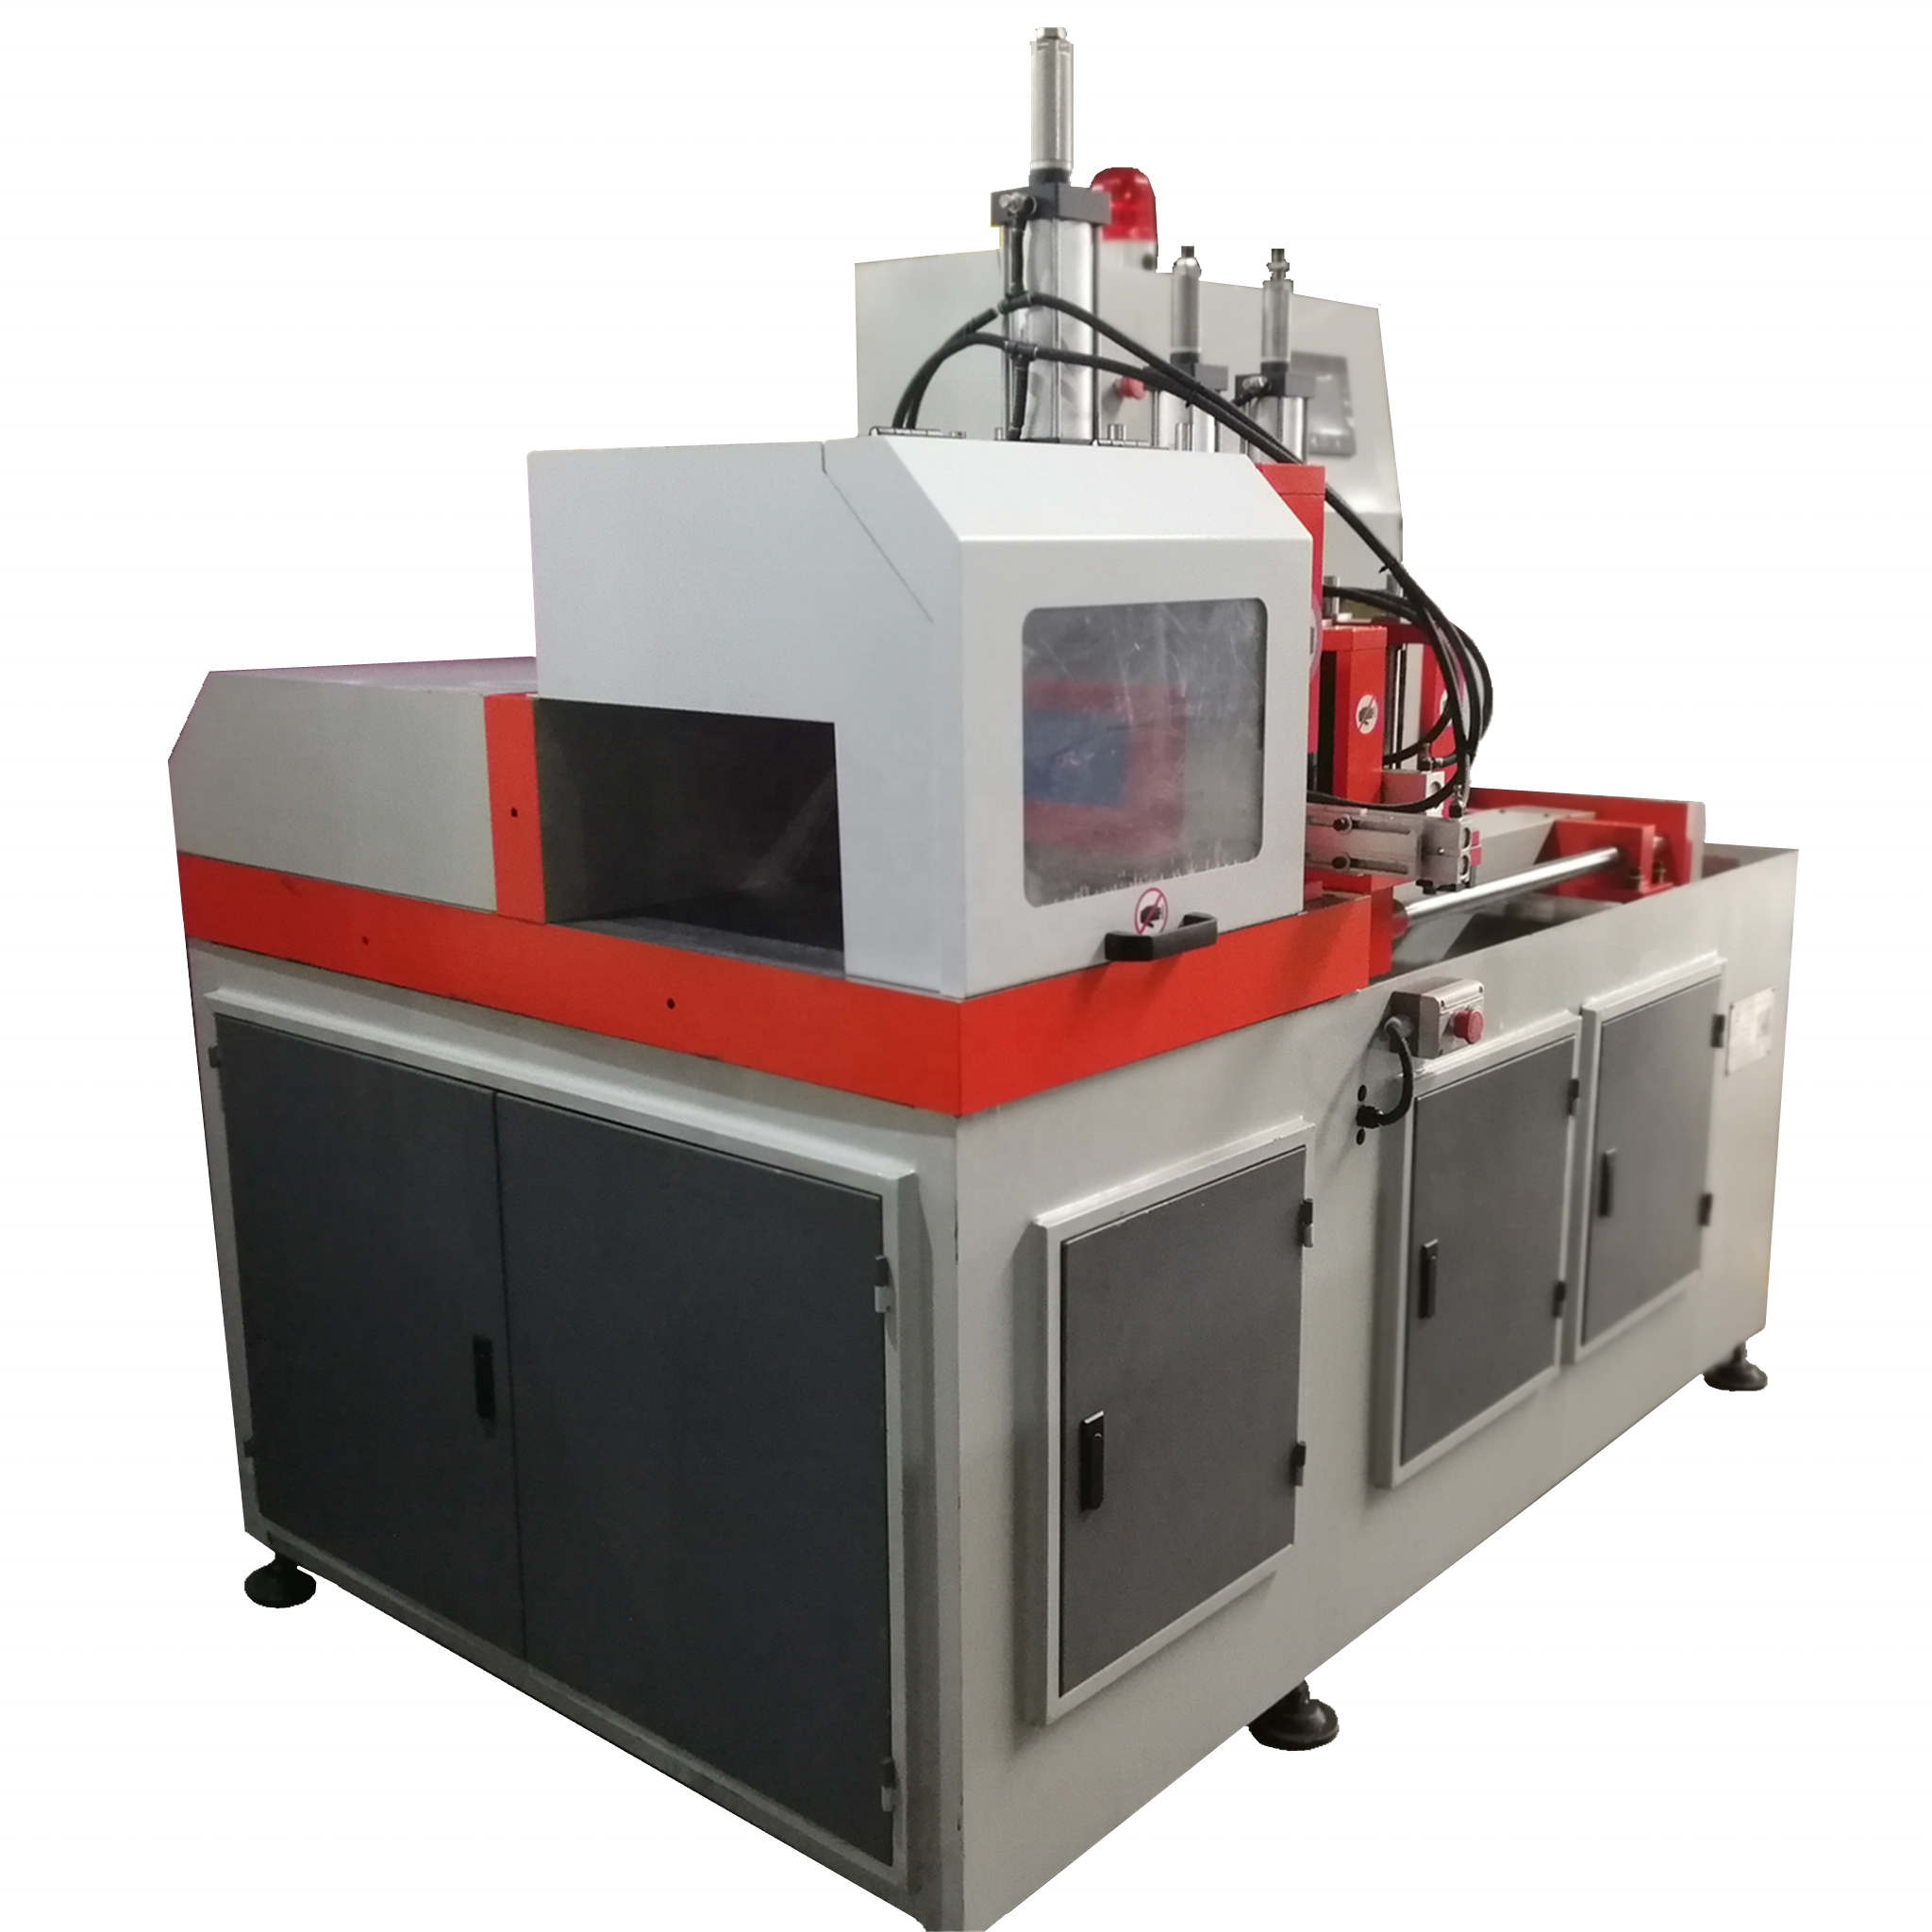 JR-505 CNC Fully Automatic Pipe Cutting Machine Profile Cutter